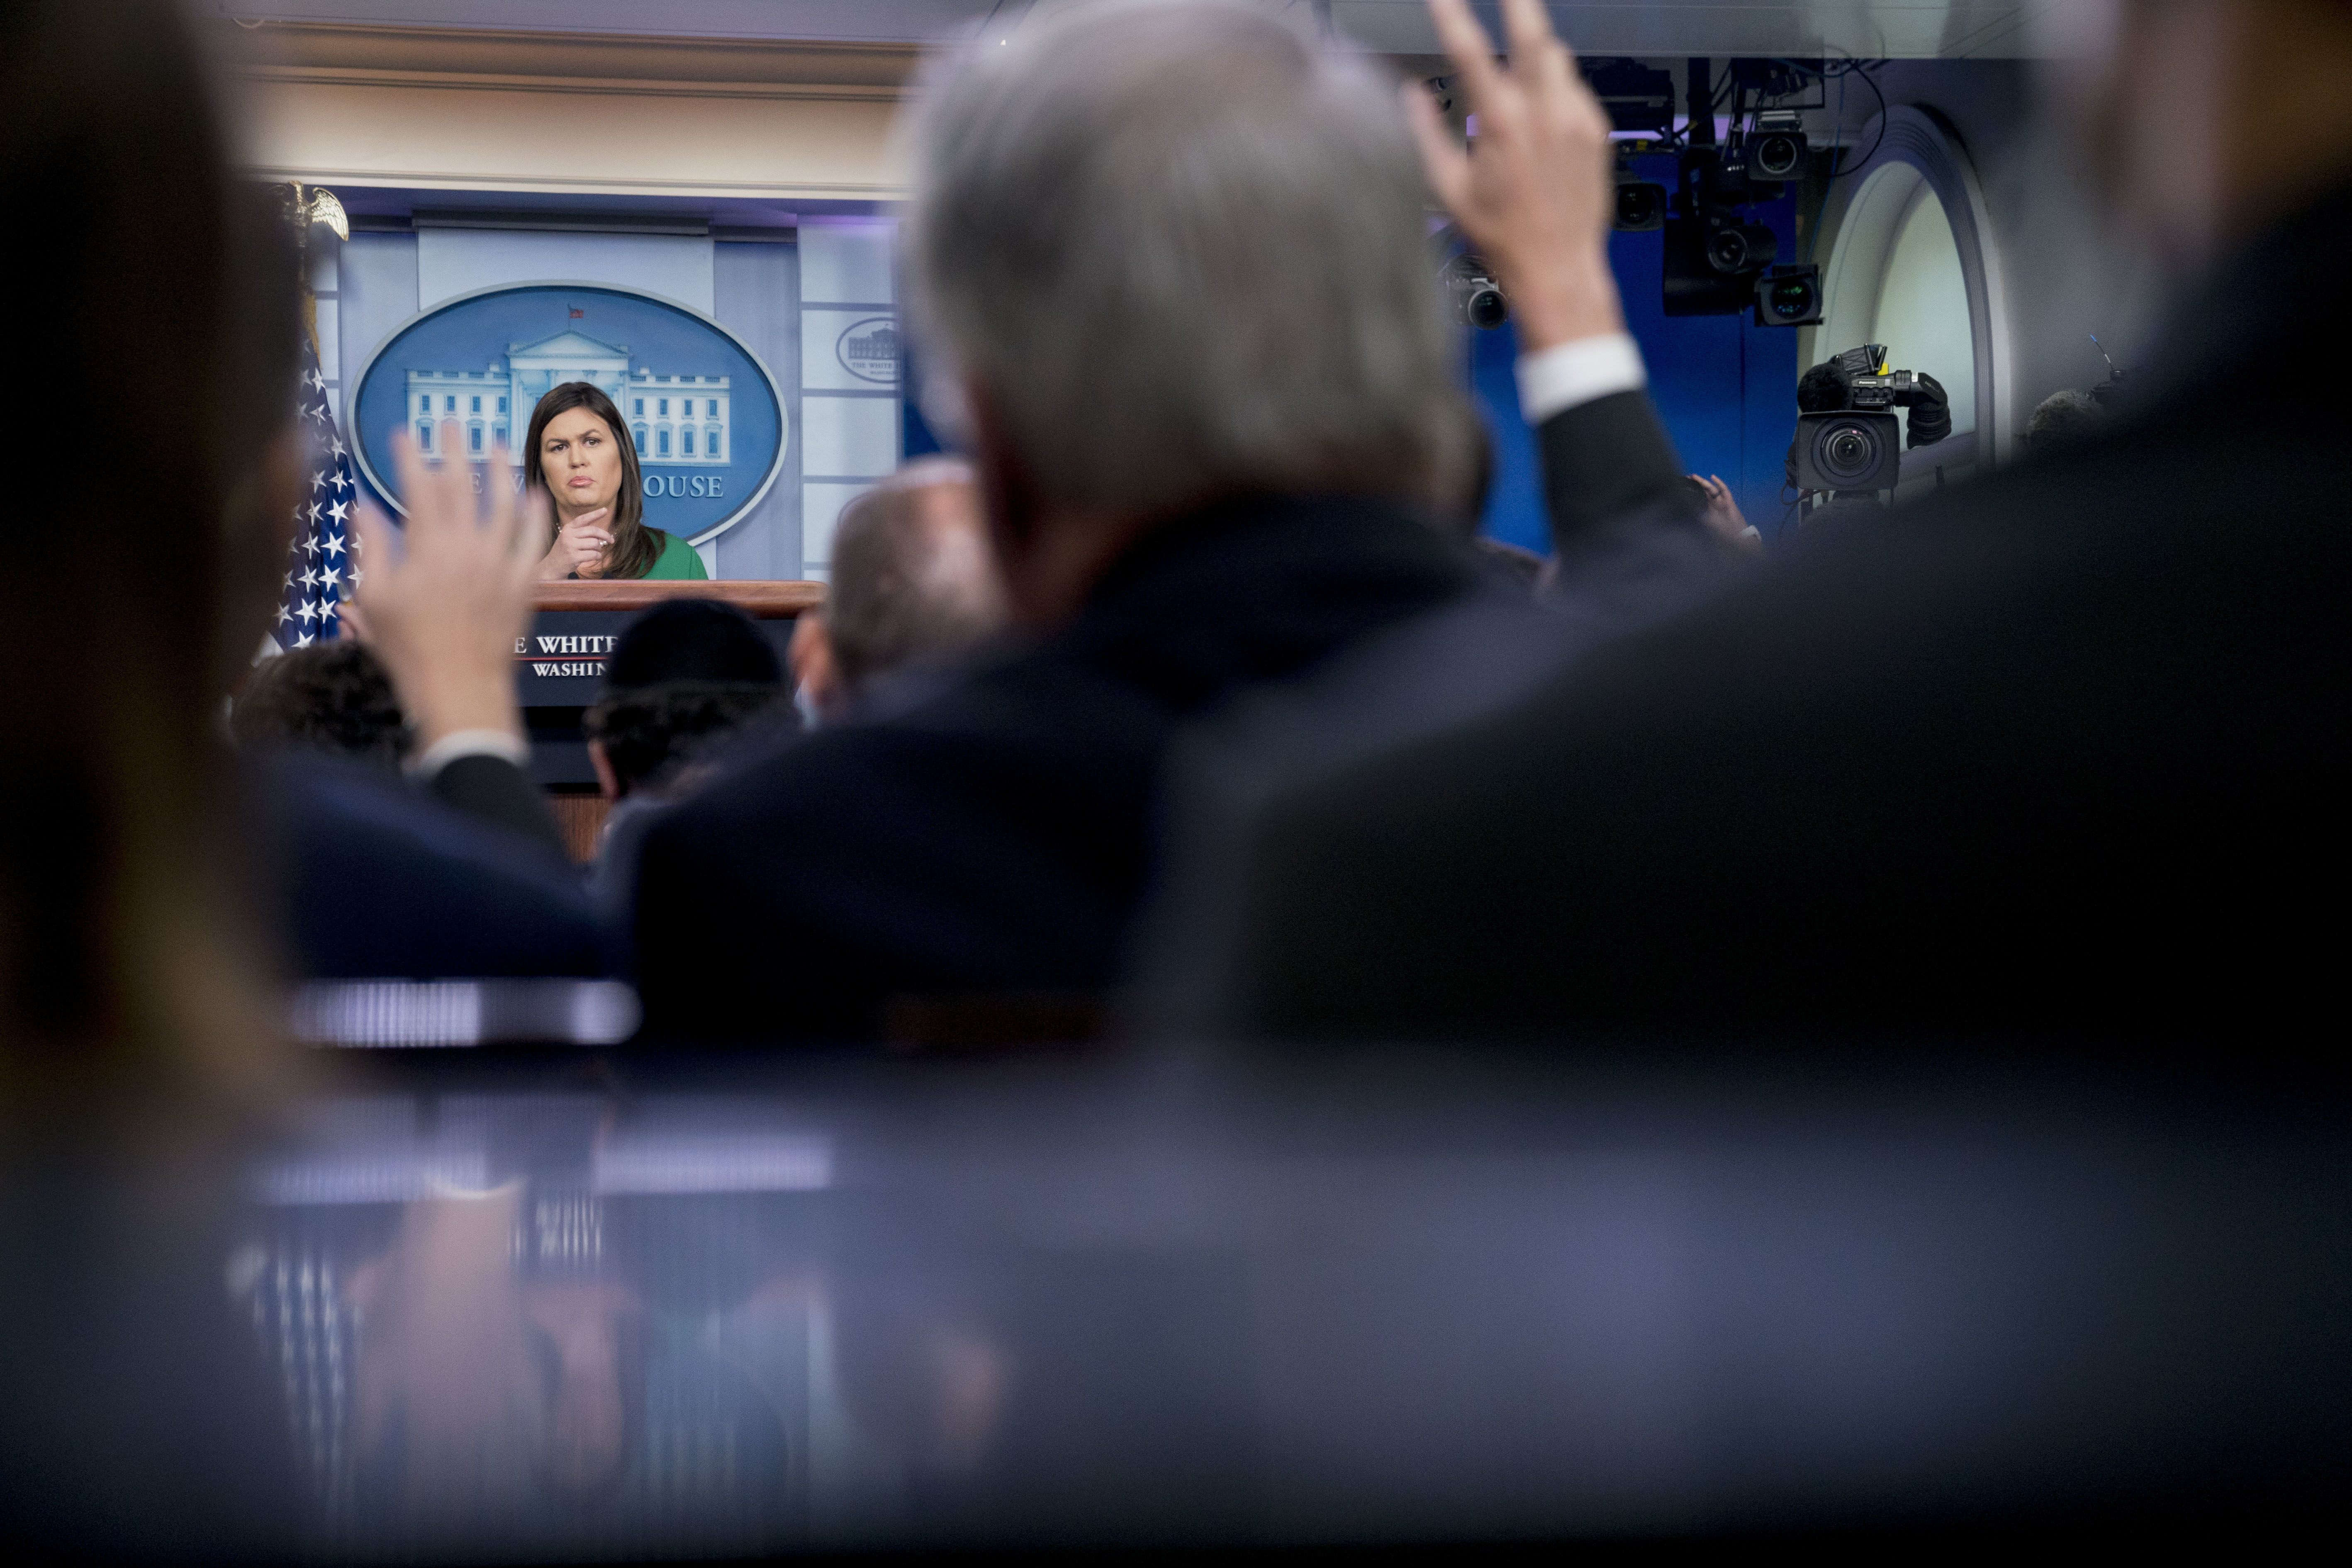 White House press secretary Sarah Huckabee Sanders calls on a member of the media during the daily press briefing at the White House, Wednesday, Aug. 15, 2018, in Washington.{ } (AP Photo/Andrew Harnik)